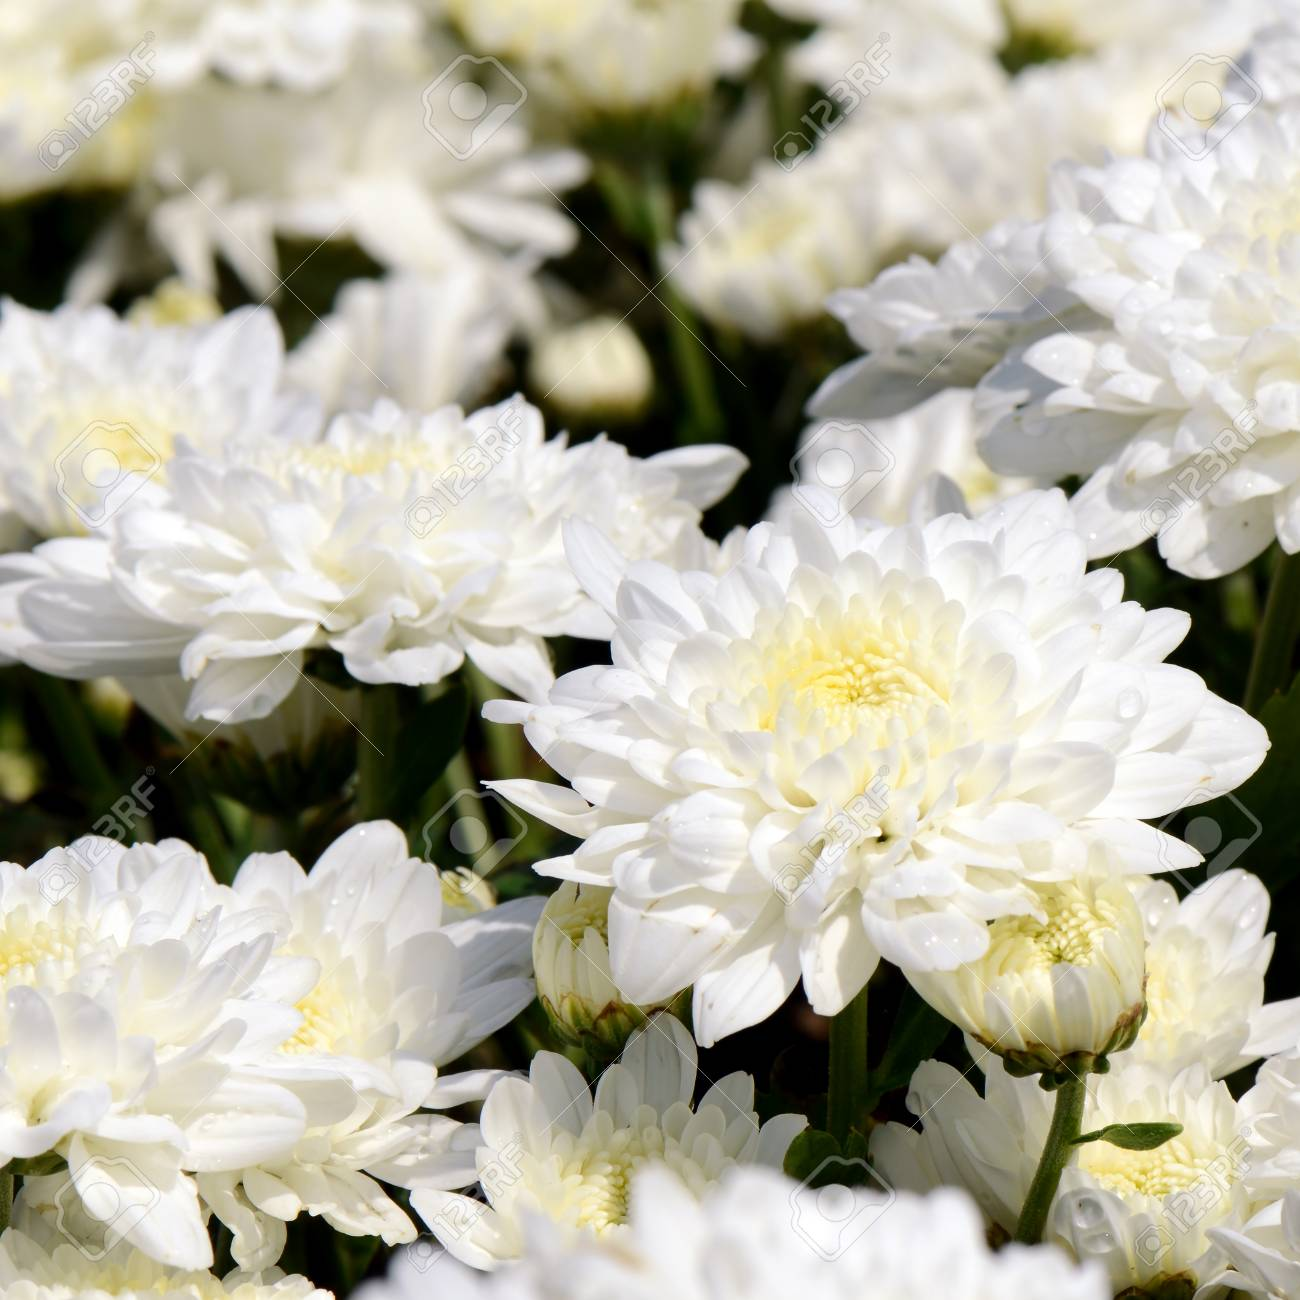 Spray Type Of White Chrysanthemum Dendranthemum Grandifflora